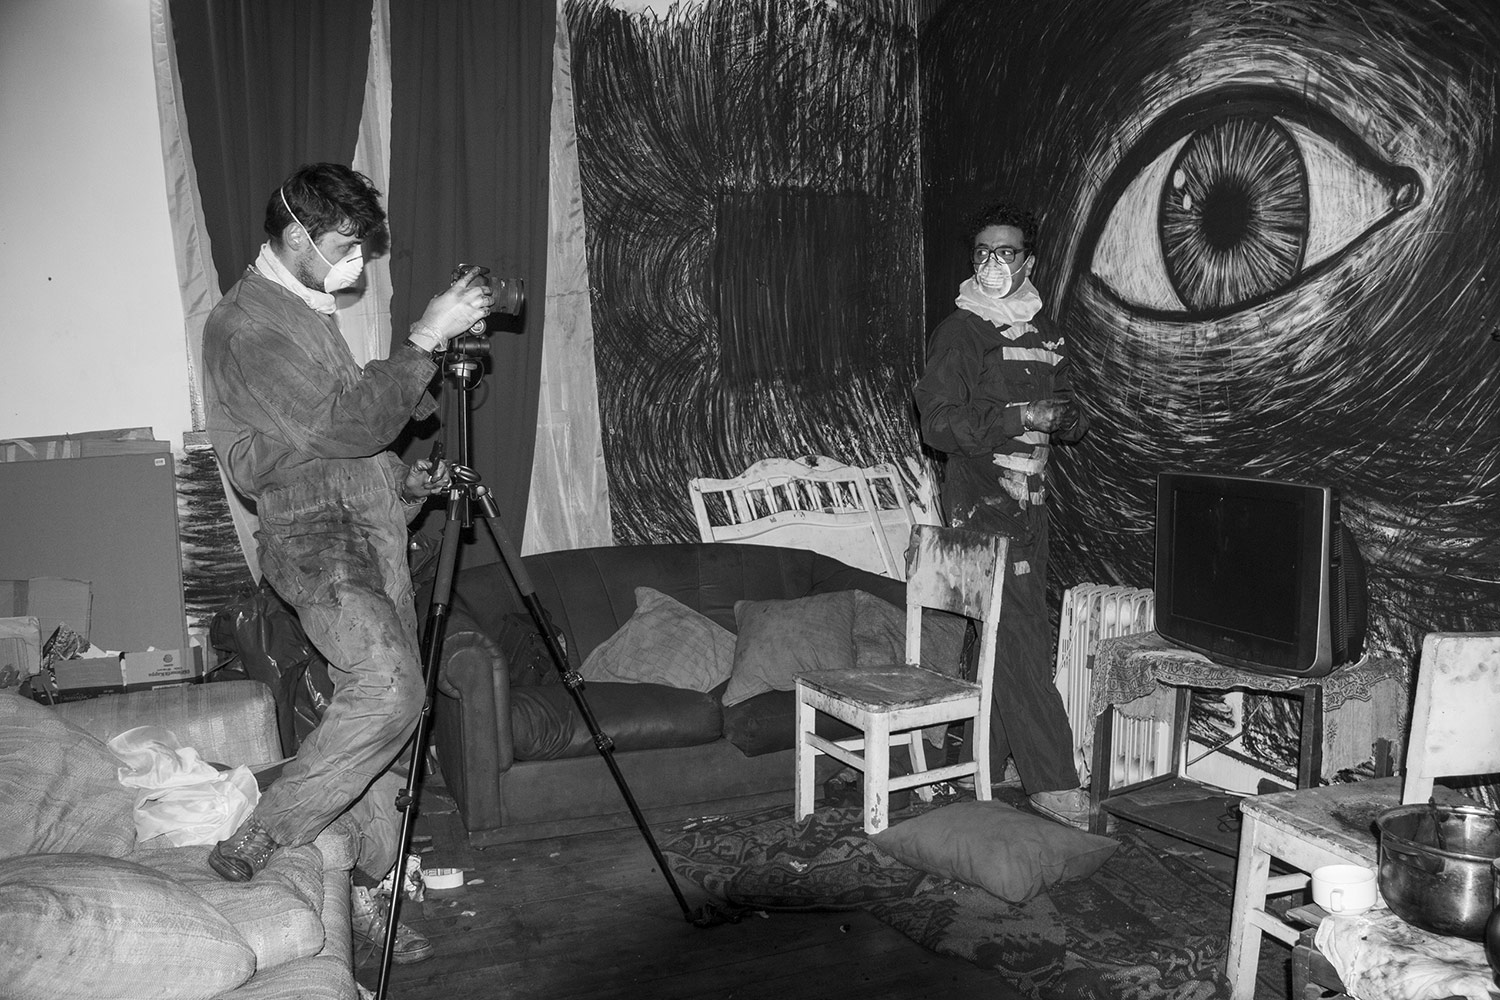 The filmmakers animating and filming on set.